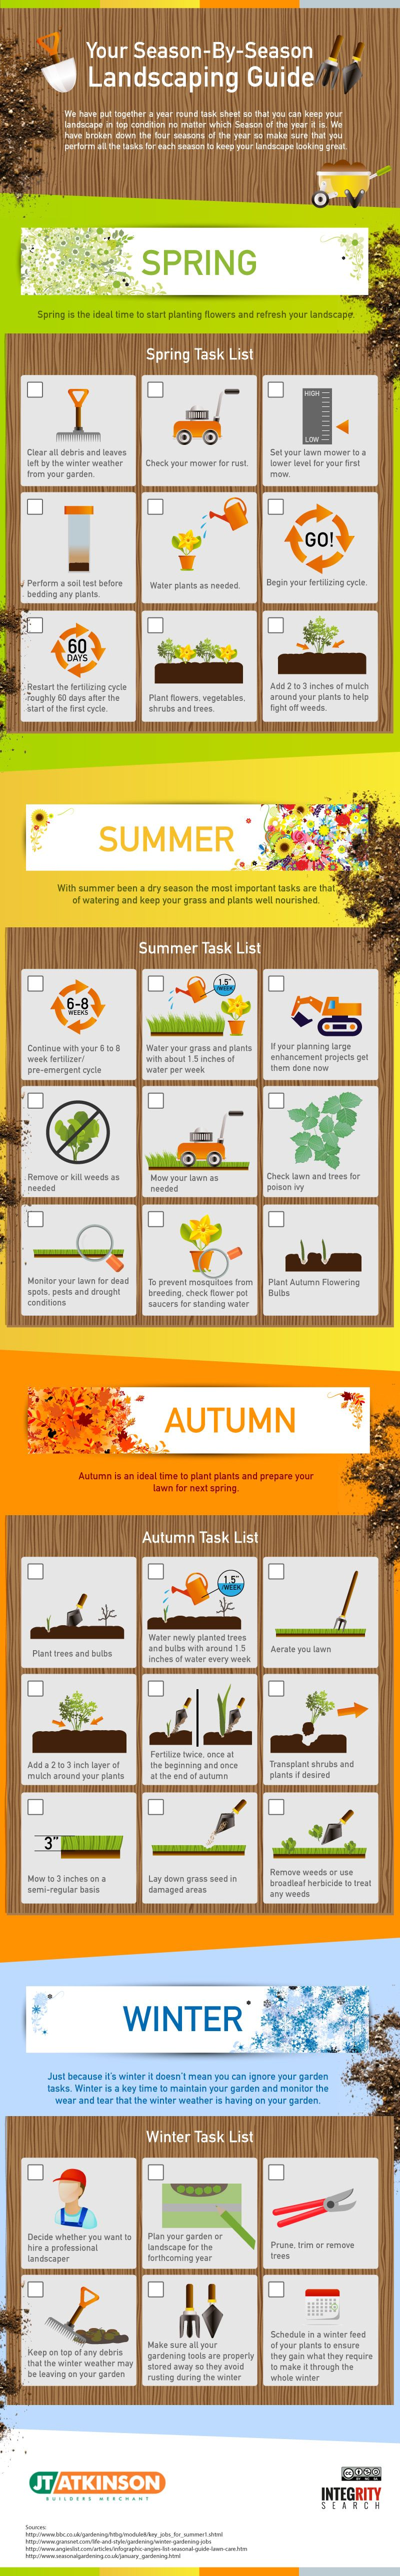 Your Season By Season Landscaping Guide #infographic